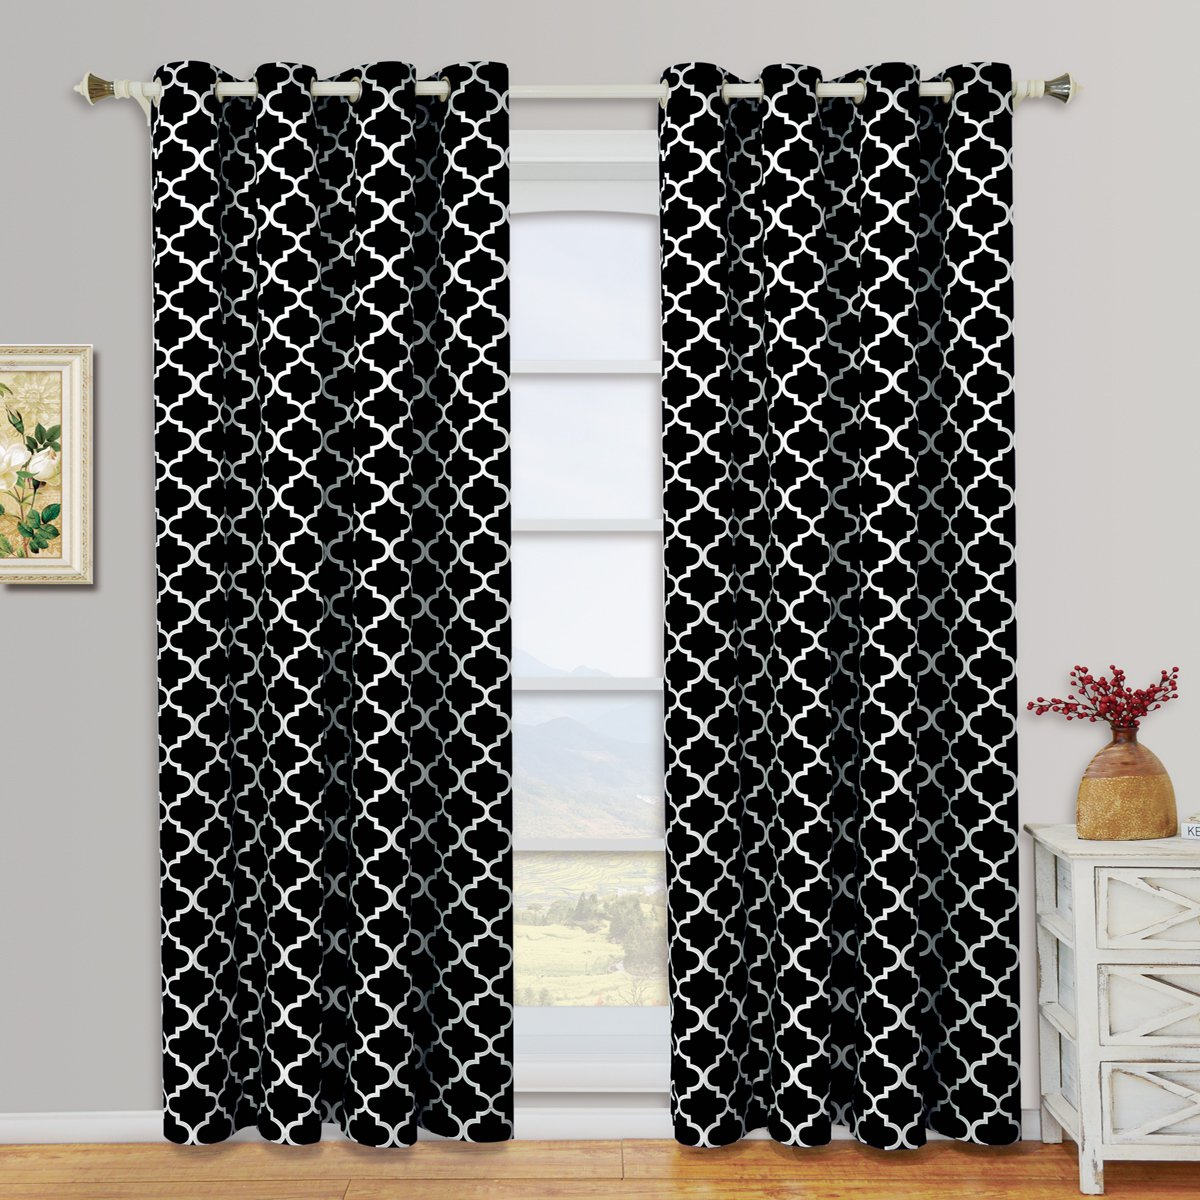 Meridian Black and White Grommet Room Darkening Window Curtain Panels, Pair / Set of 2 Panels